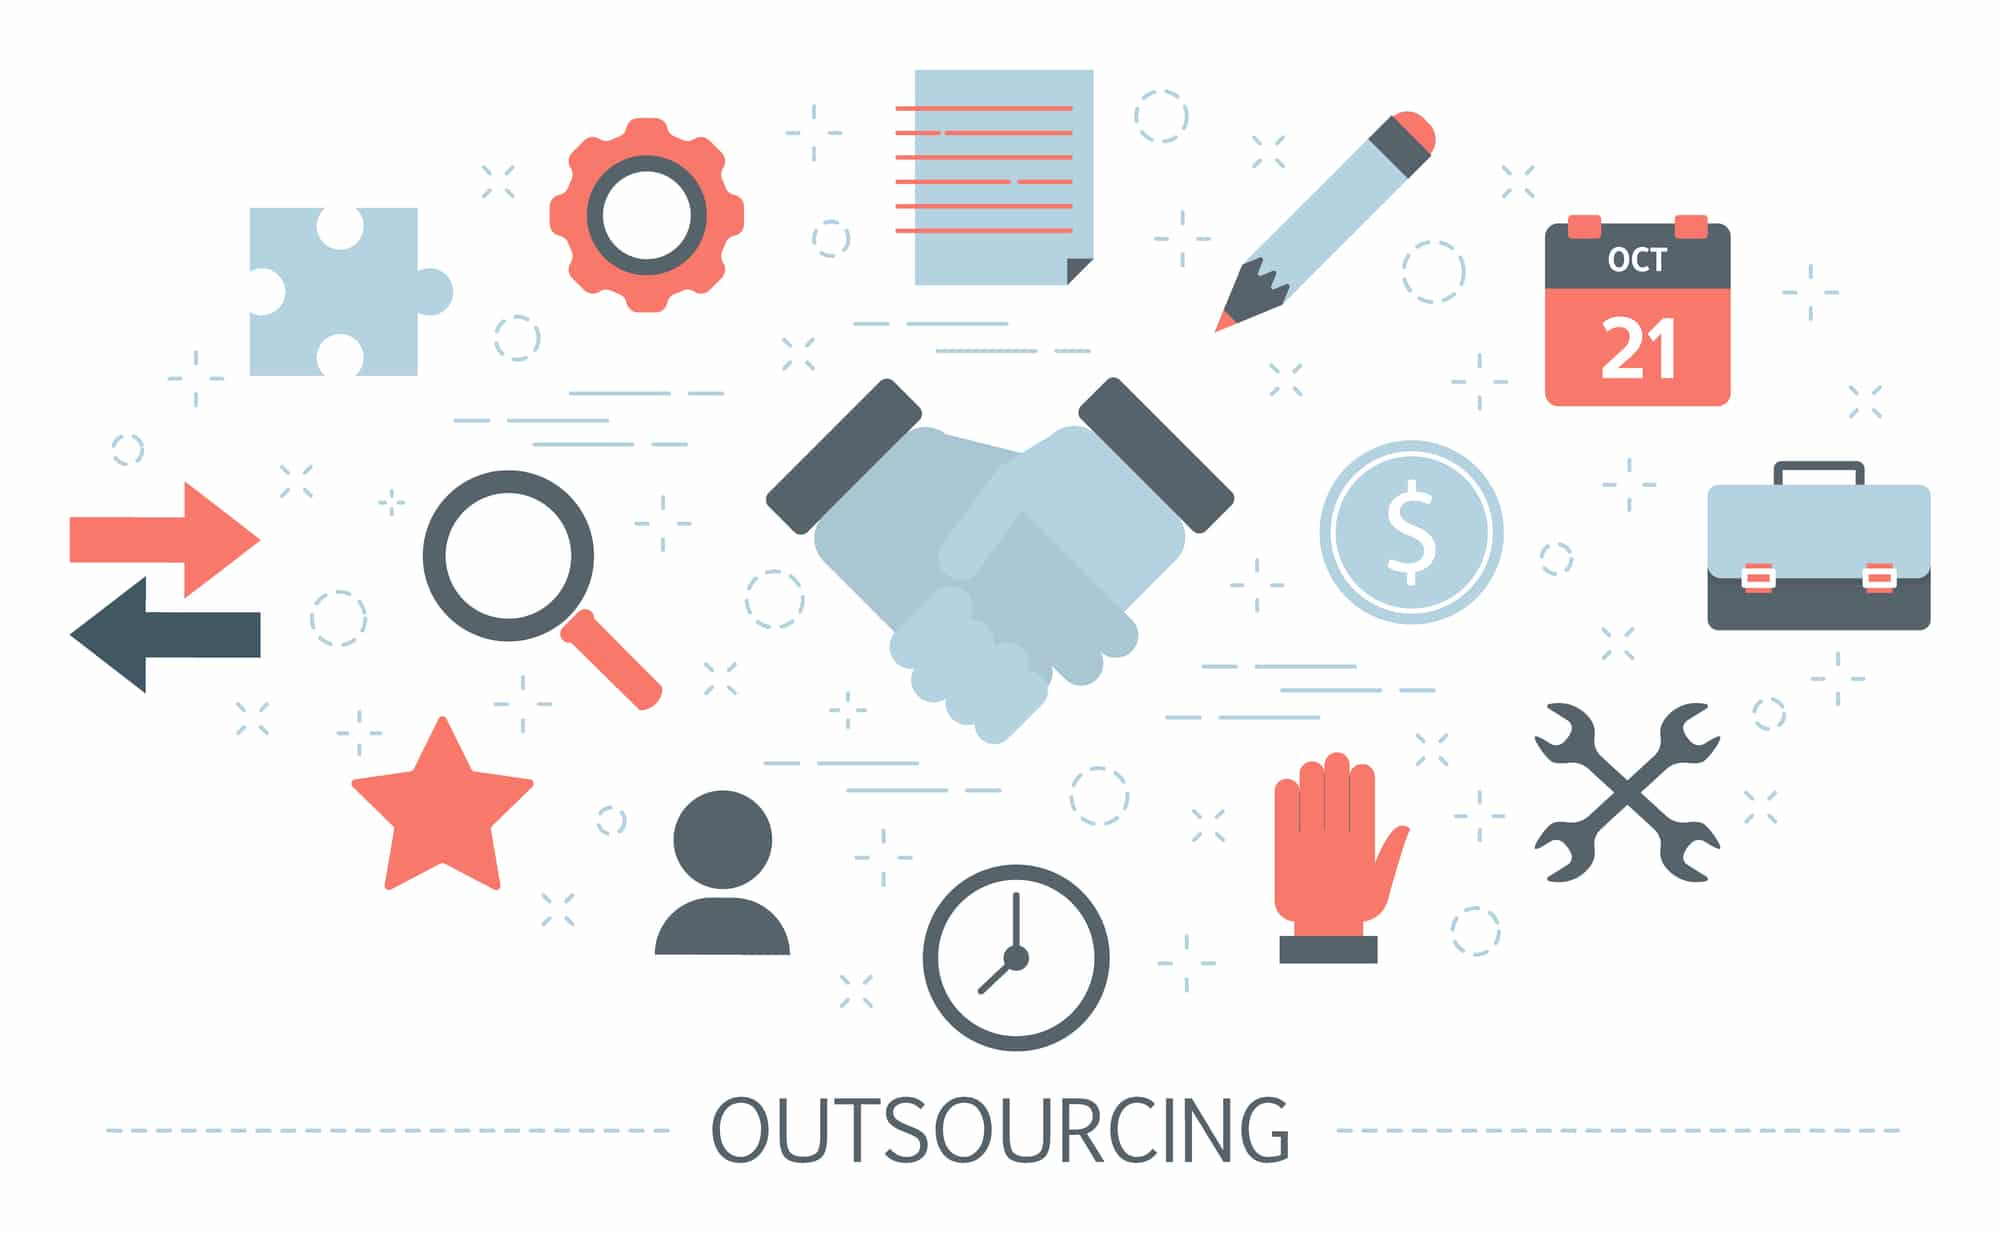 Technology Management Image: 4 Reasons Why Call Center Outsourcing Delivers Solutions